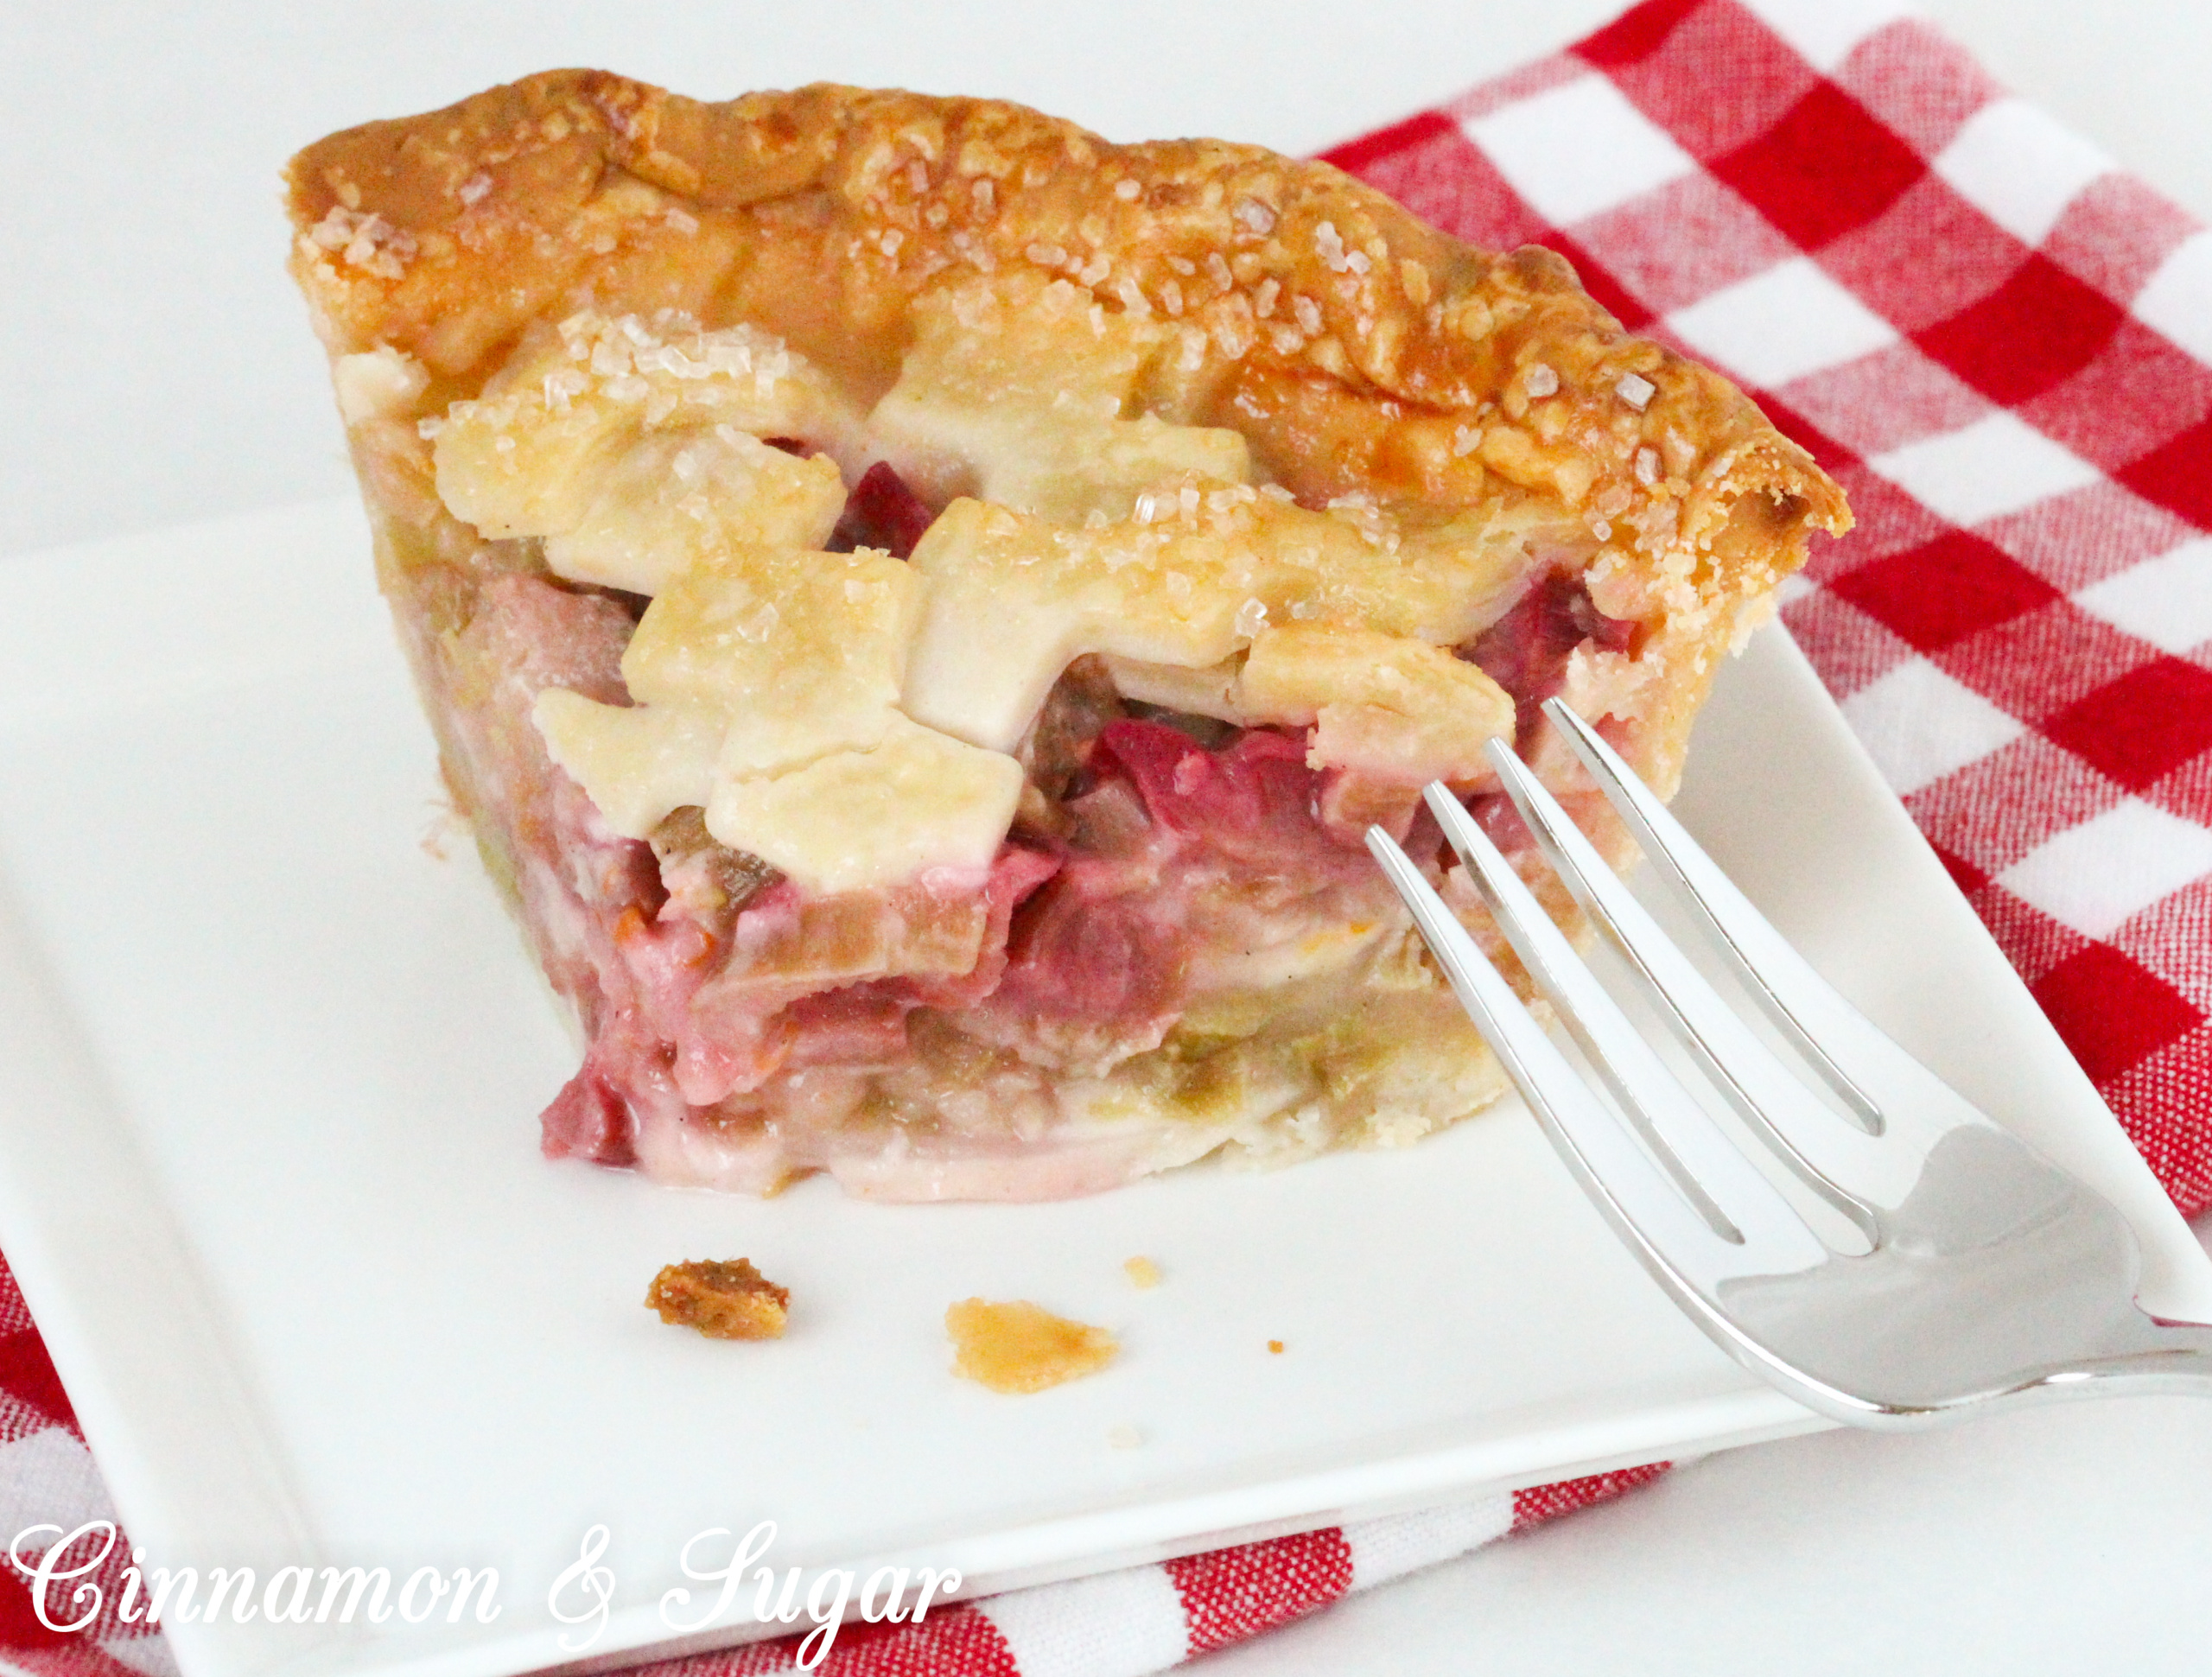 Juicy and sweet/tart, the pretty and delicious pink rhubarb filling and flaky crust make these mini rhubarb pies a delicious ending to any meal. Recipe shared with permission granted by Tracy Gardner, author of BEHIND THE FRAME.